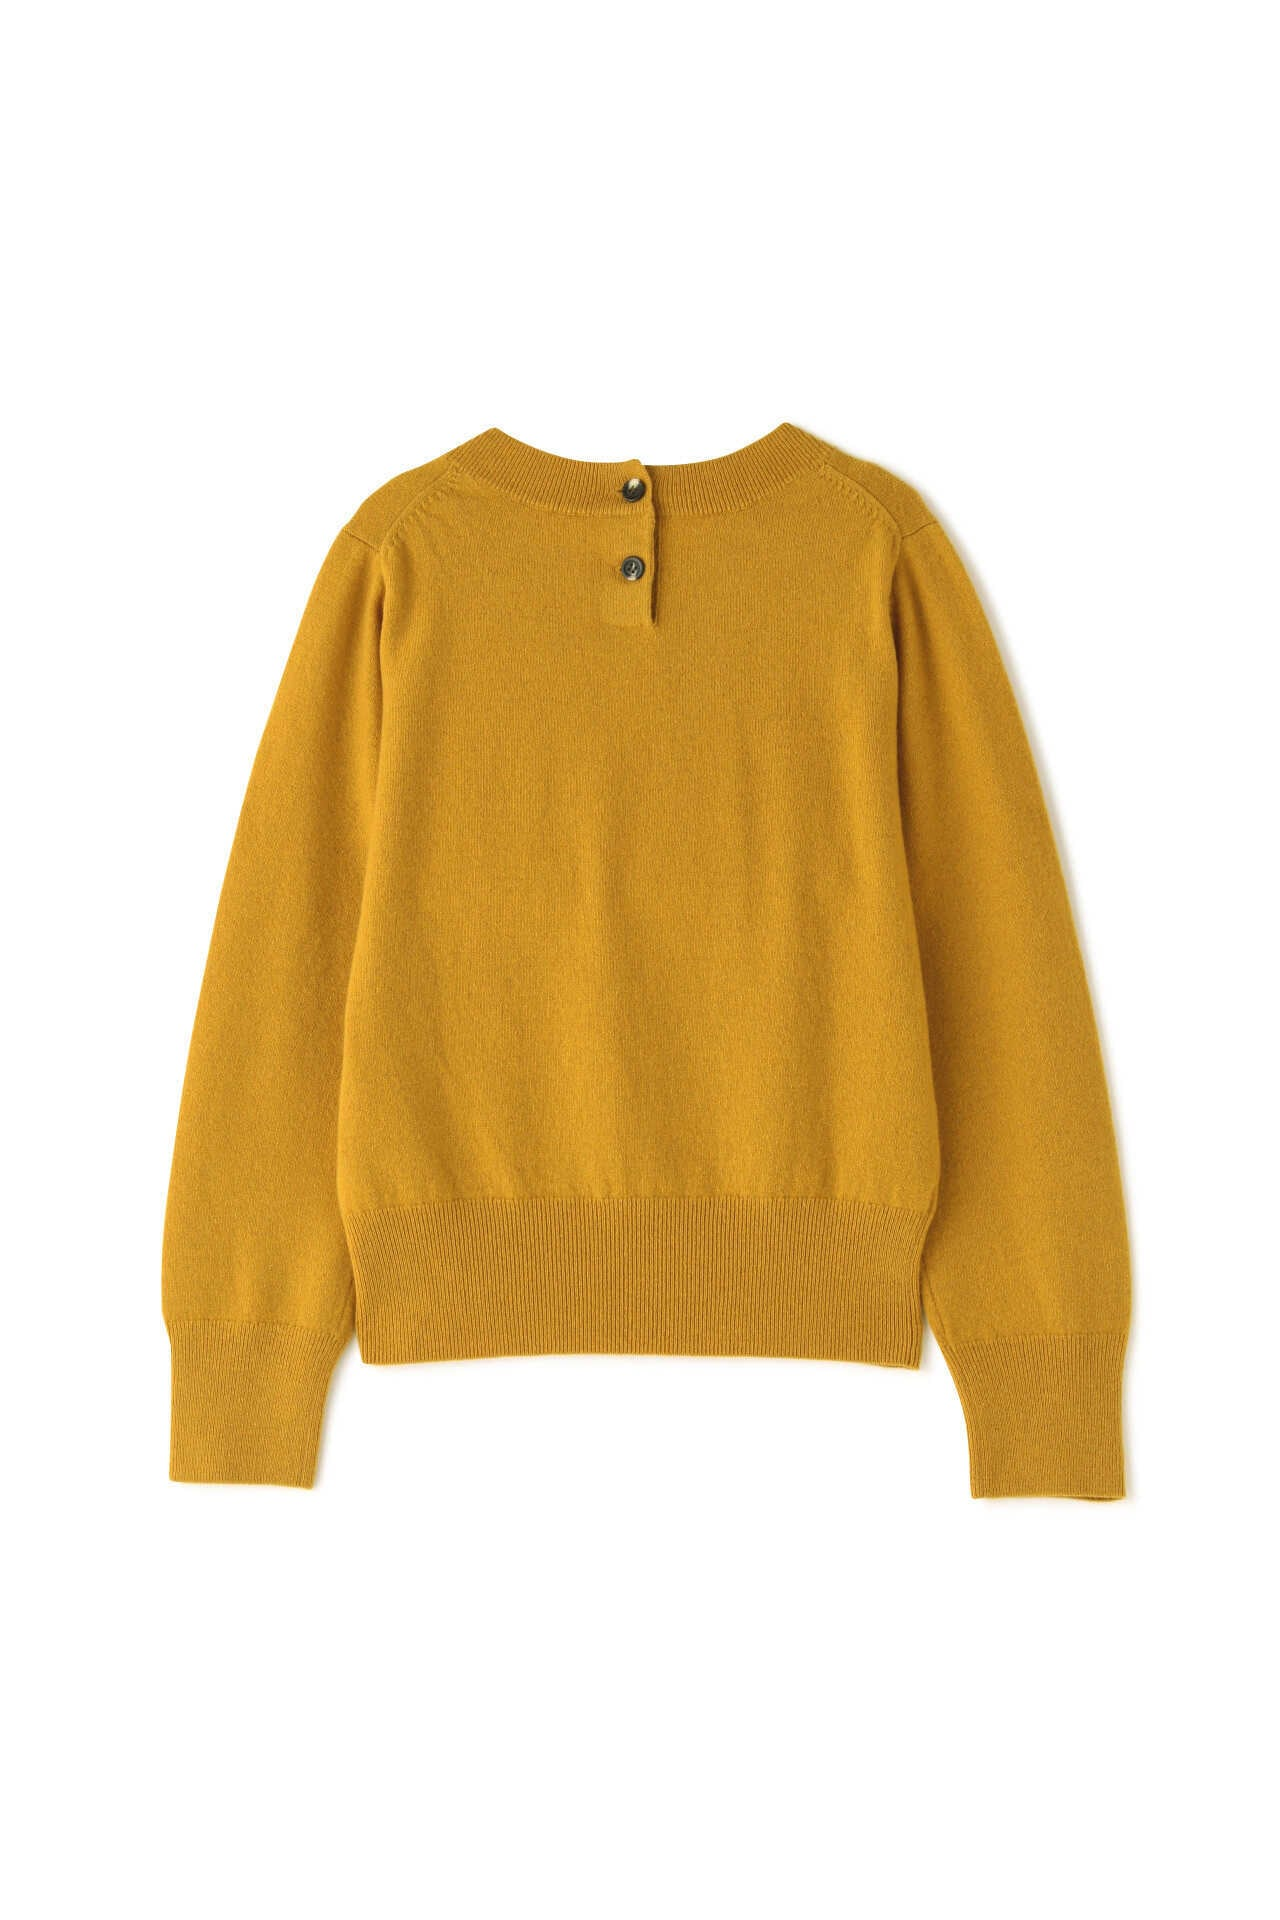 LAMBSWOOL CASHMERE6